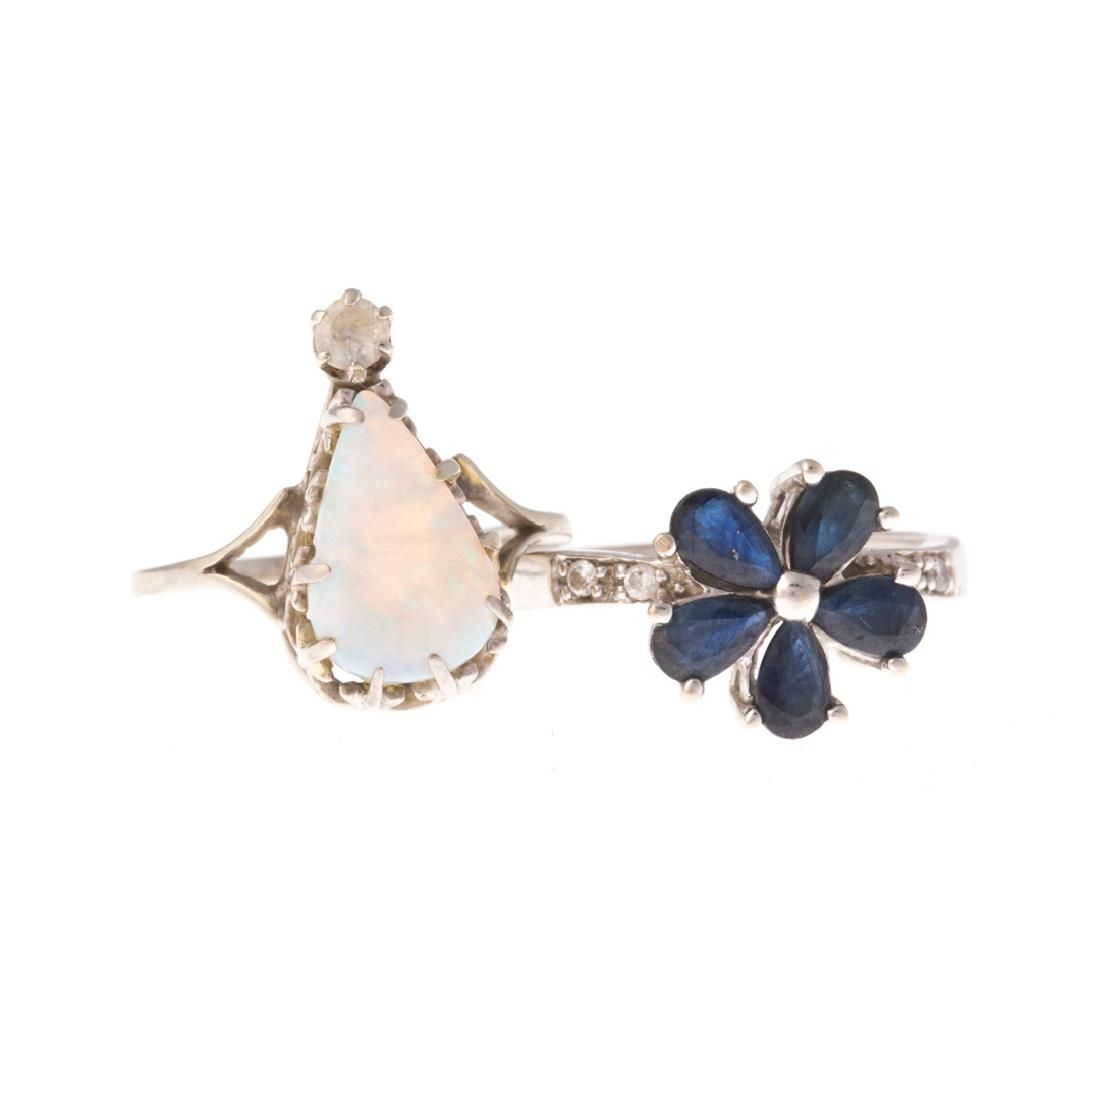 A Pair of White Gold Gemstone Earrings